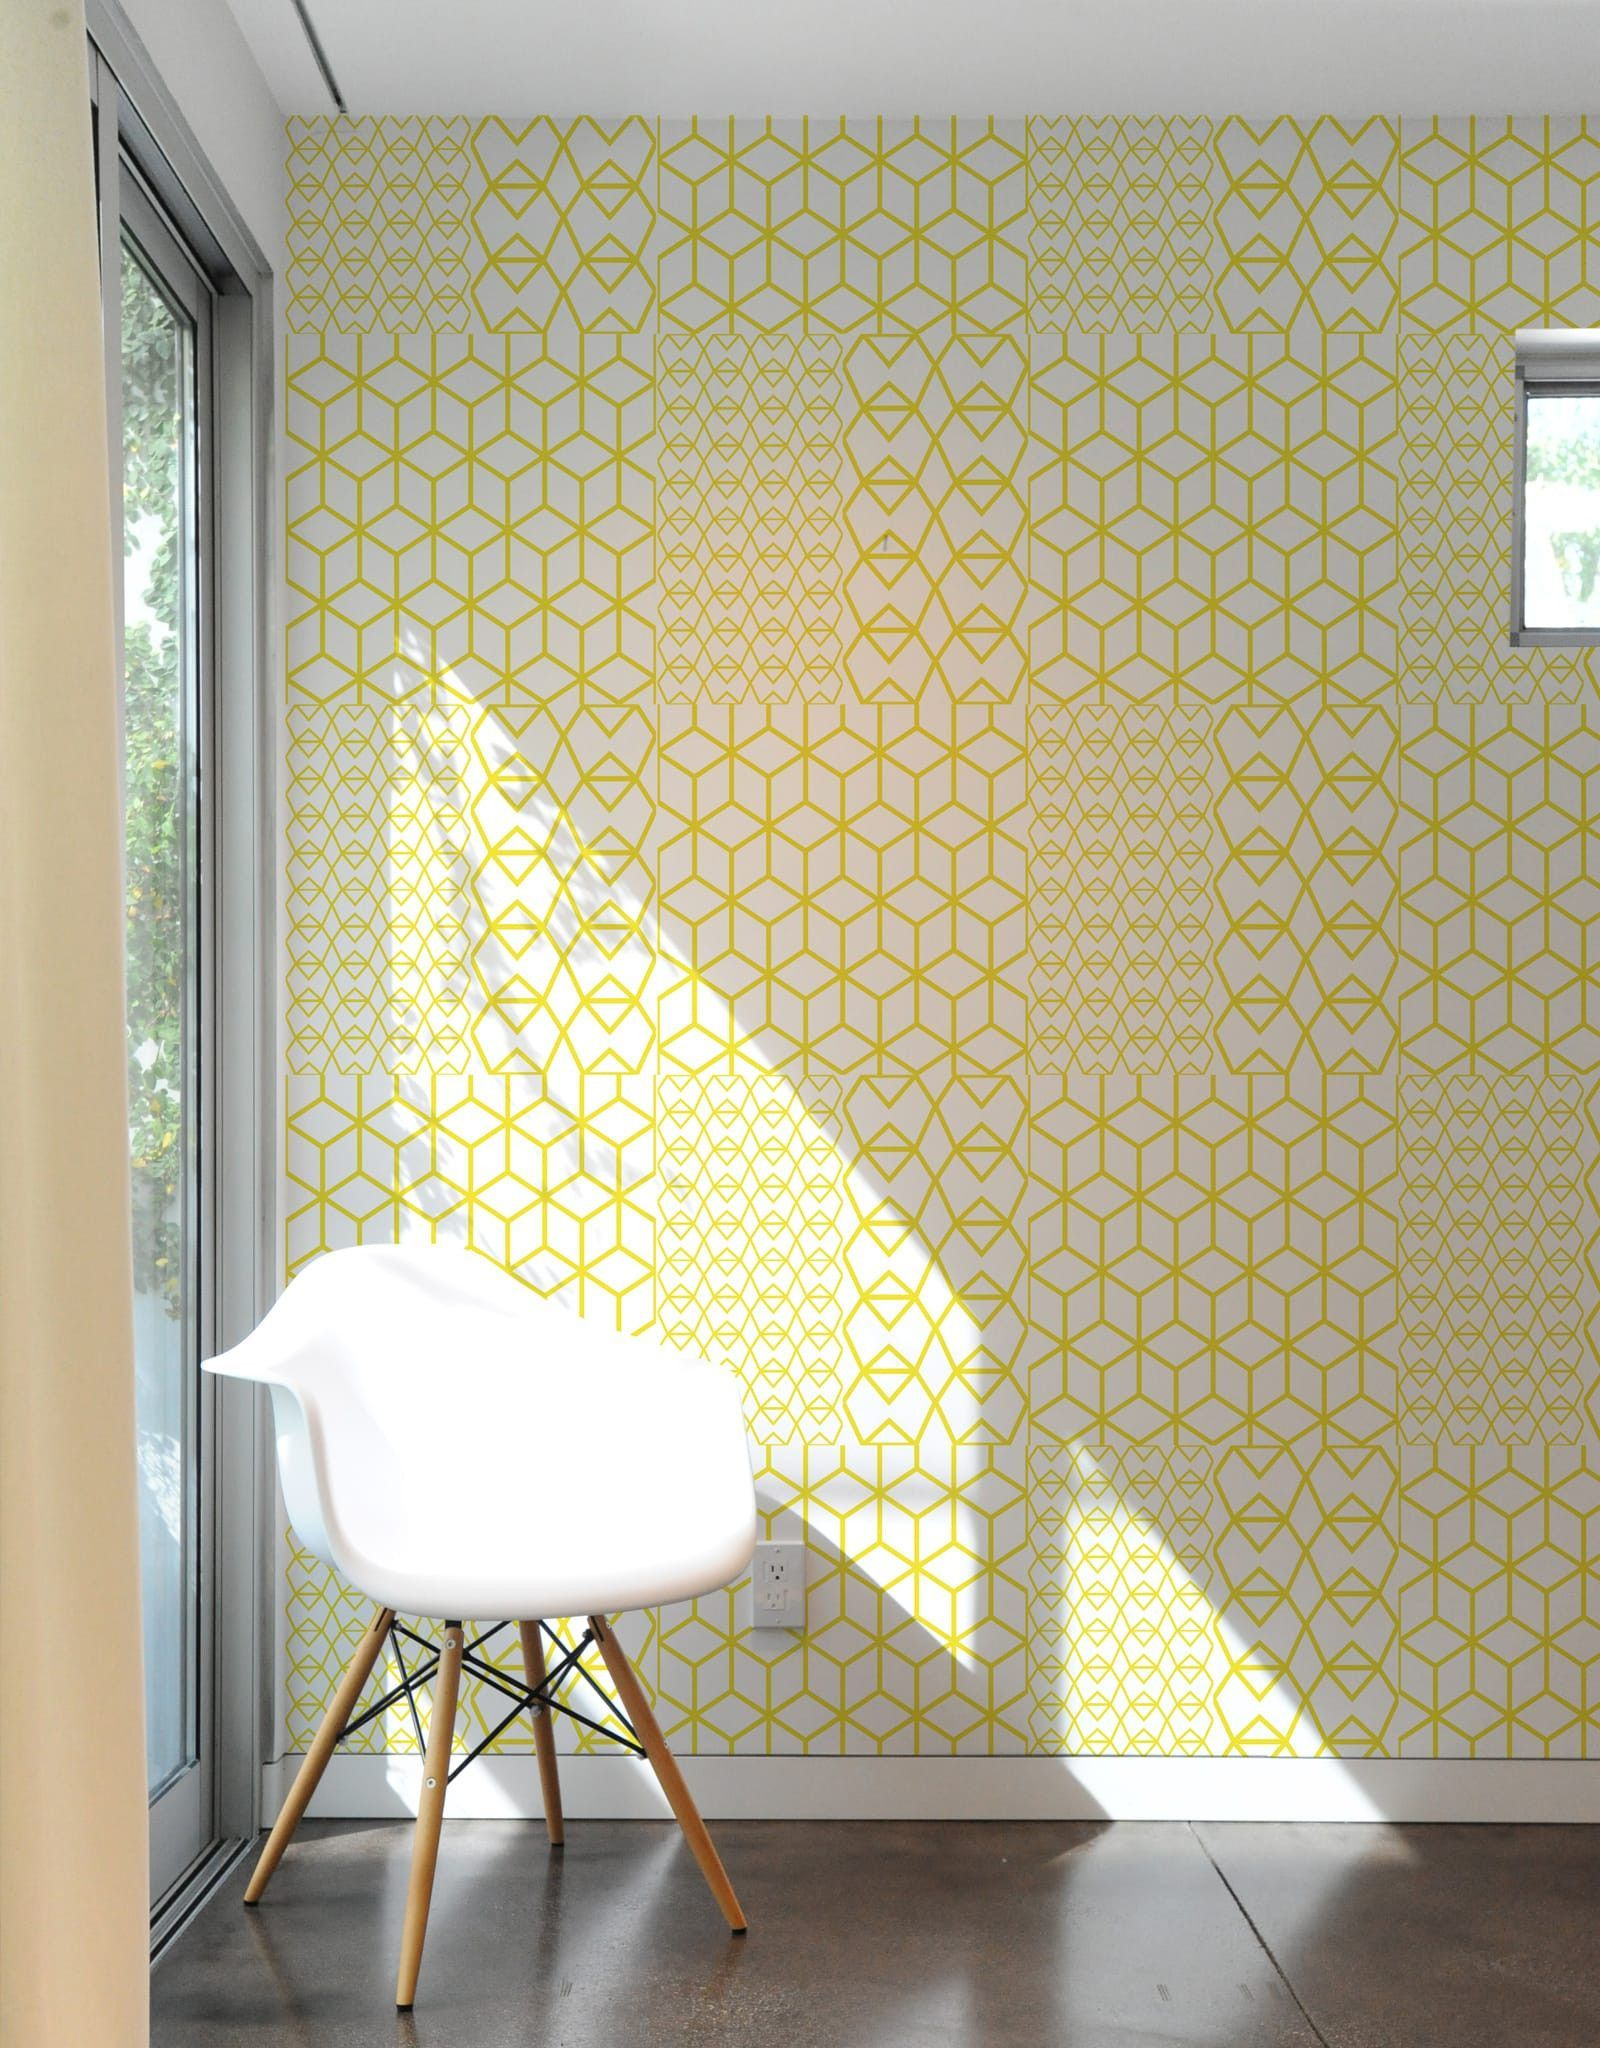 Fold Yellow Crystal Pattern Wall Tiles | future | Pinterest ...